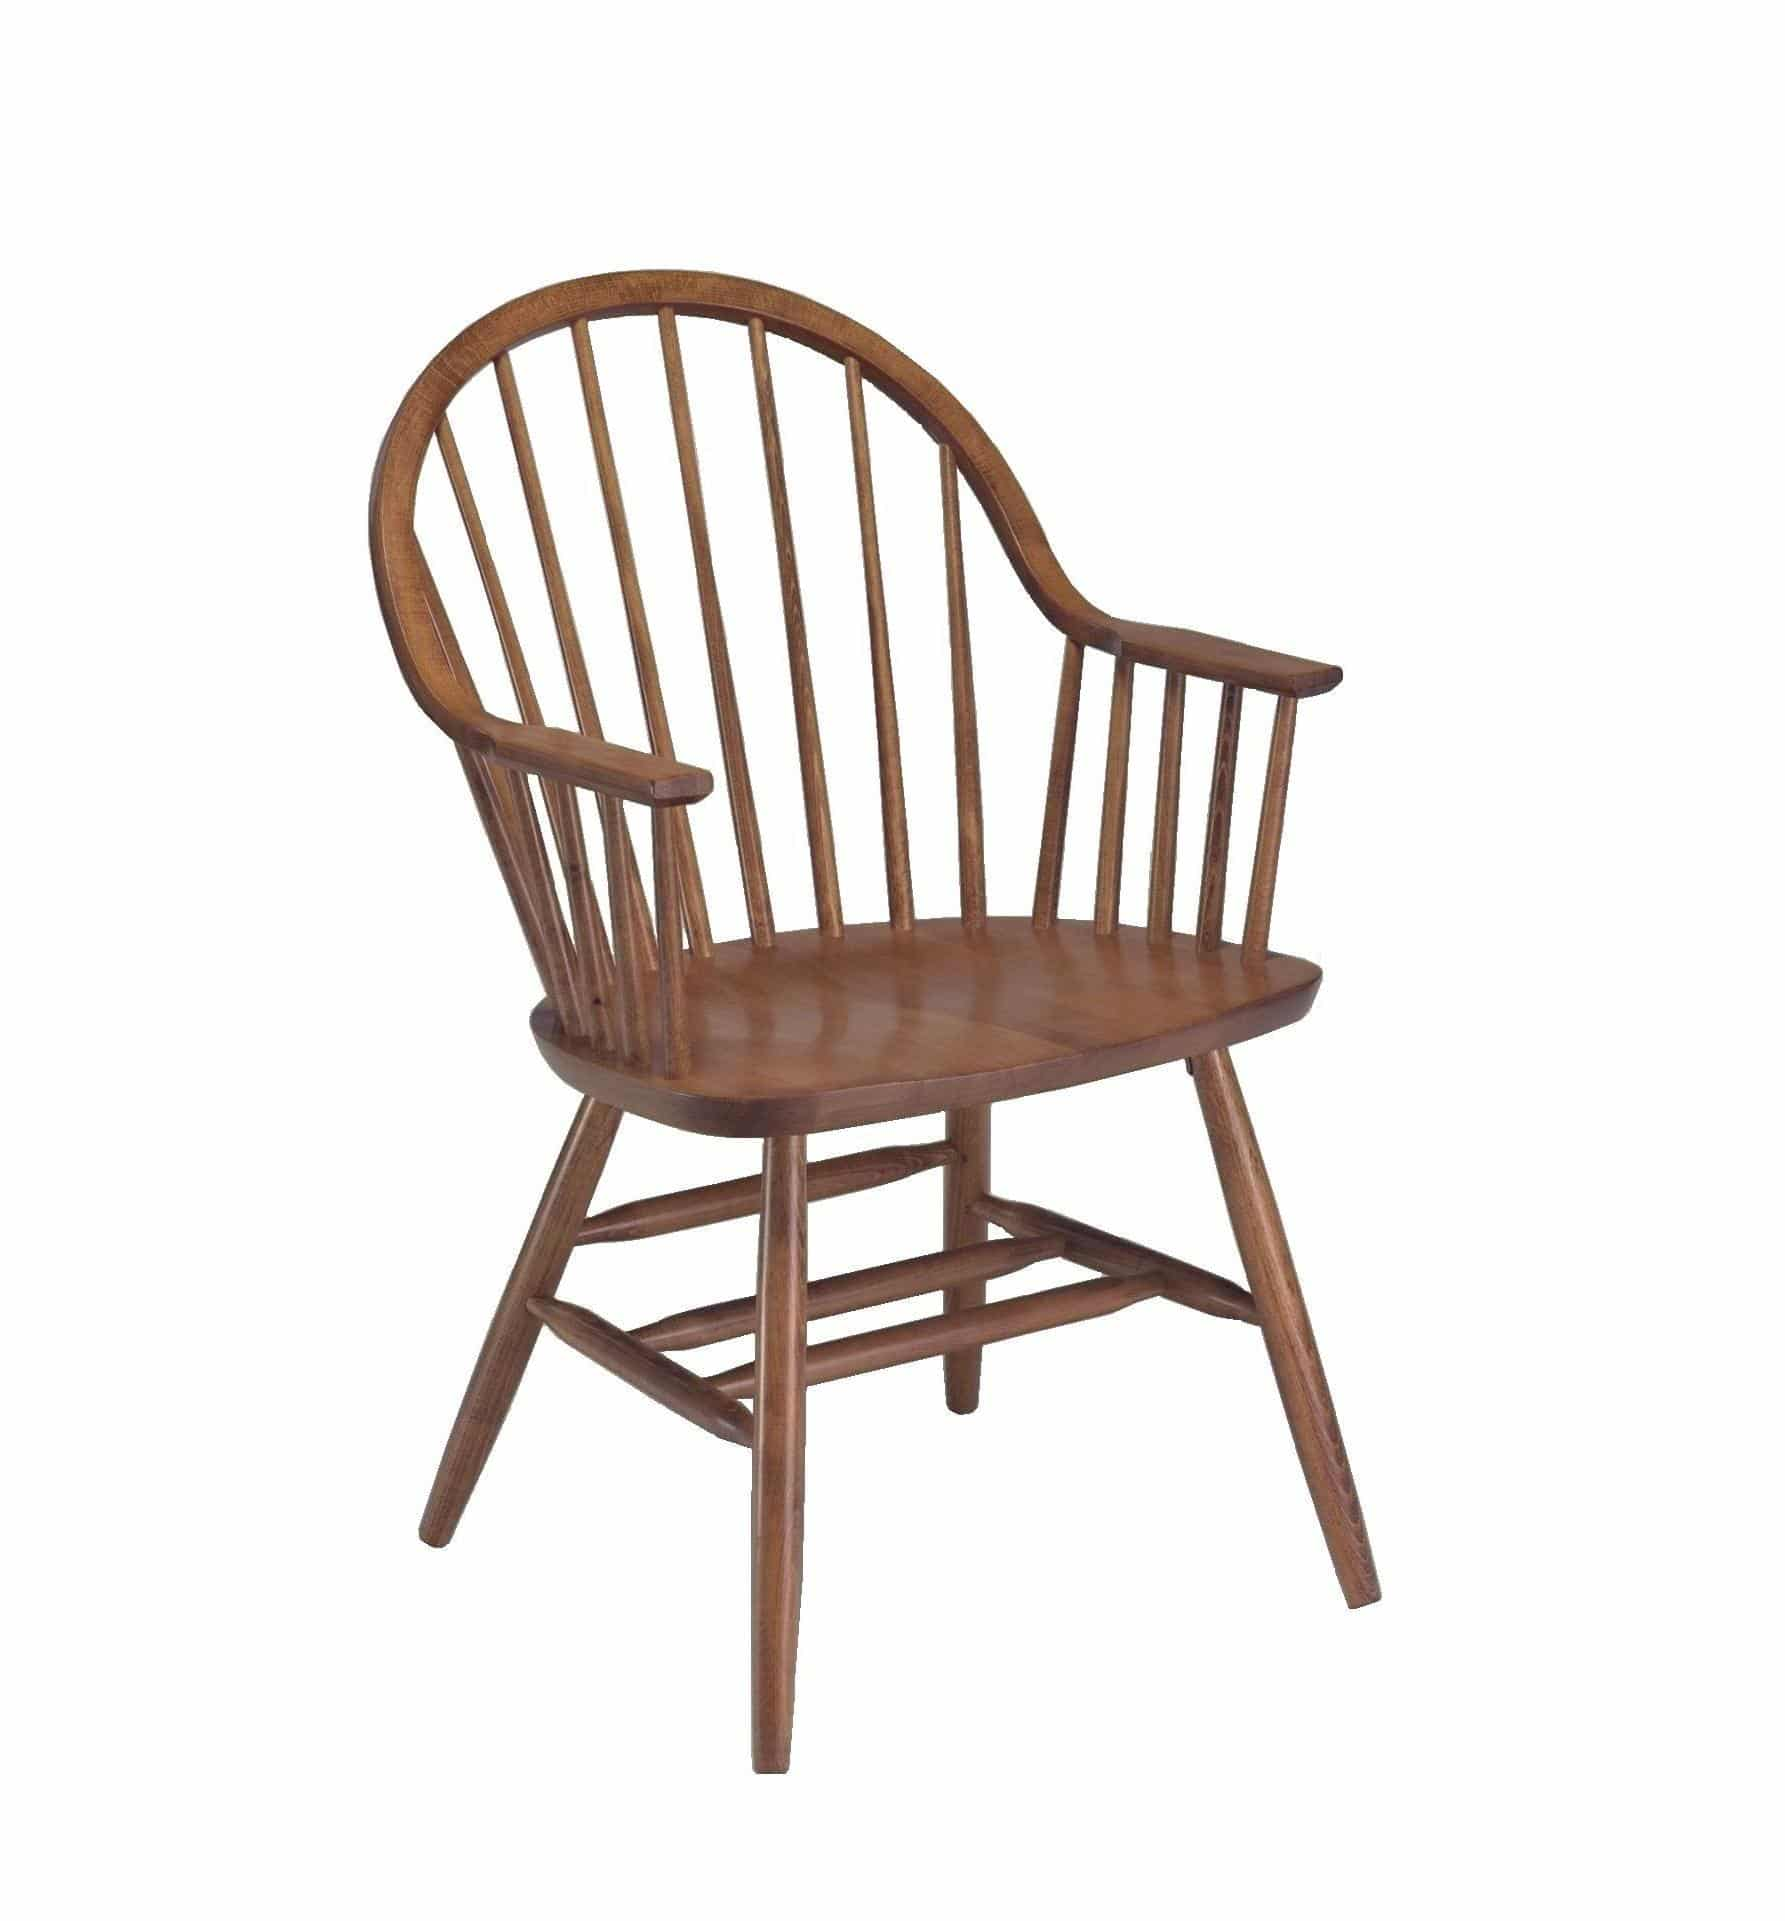 windsor chair with arms dollarama christmas covers colonial arm spindle back model 25 restaurant